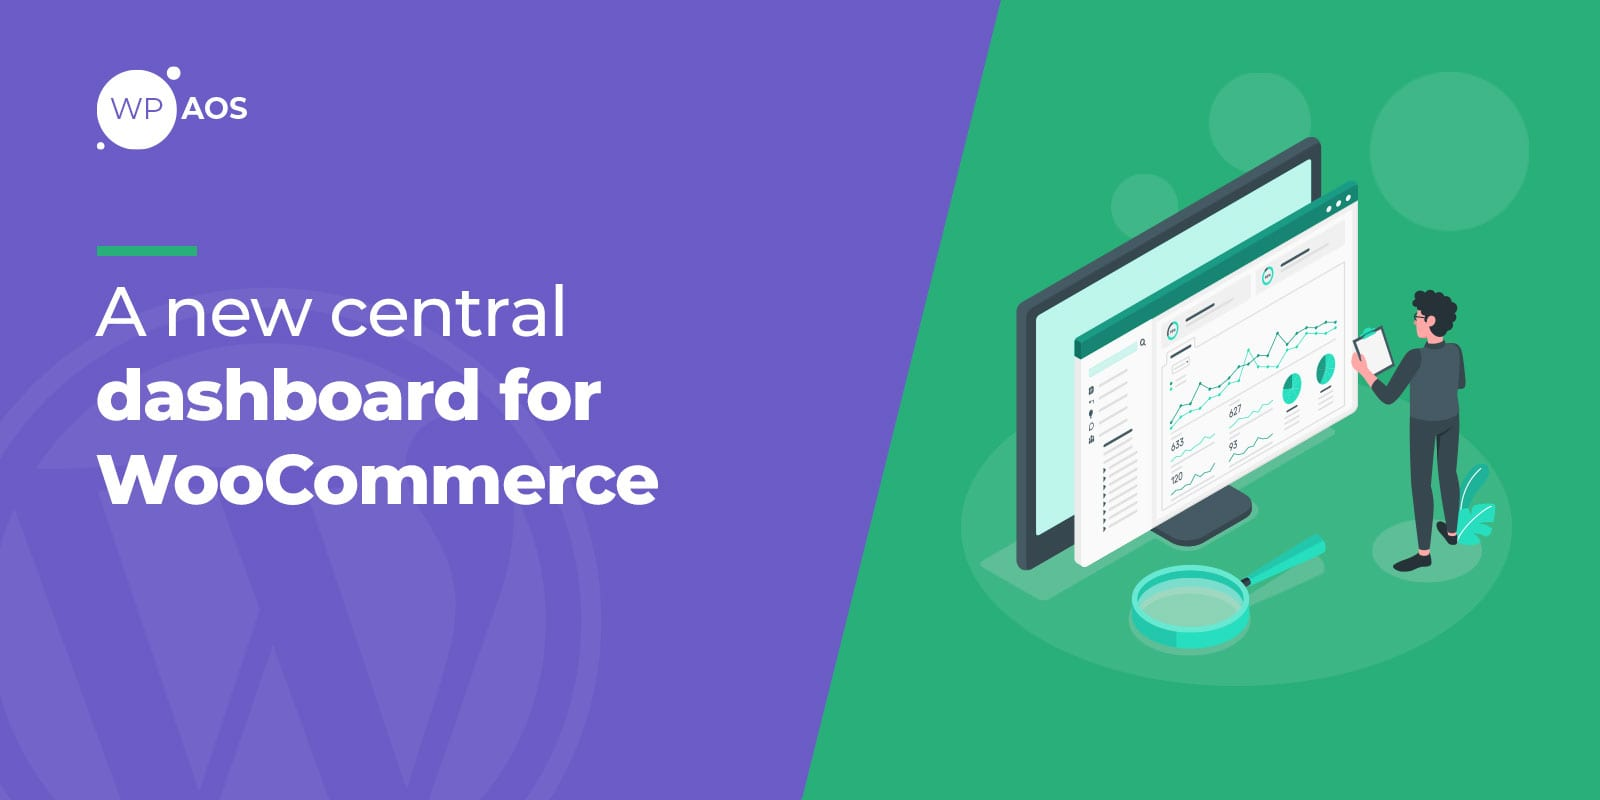 woocommerce dashboard, wordpress maintenance, support, wpaos